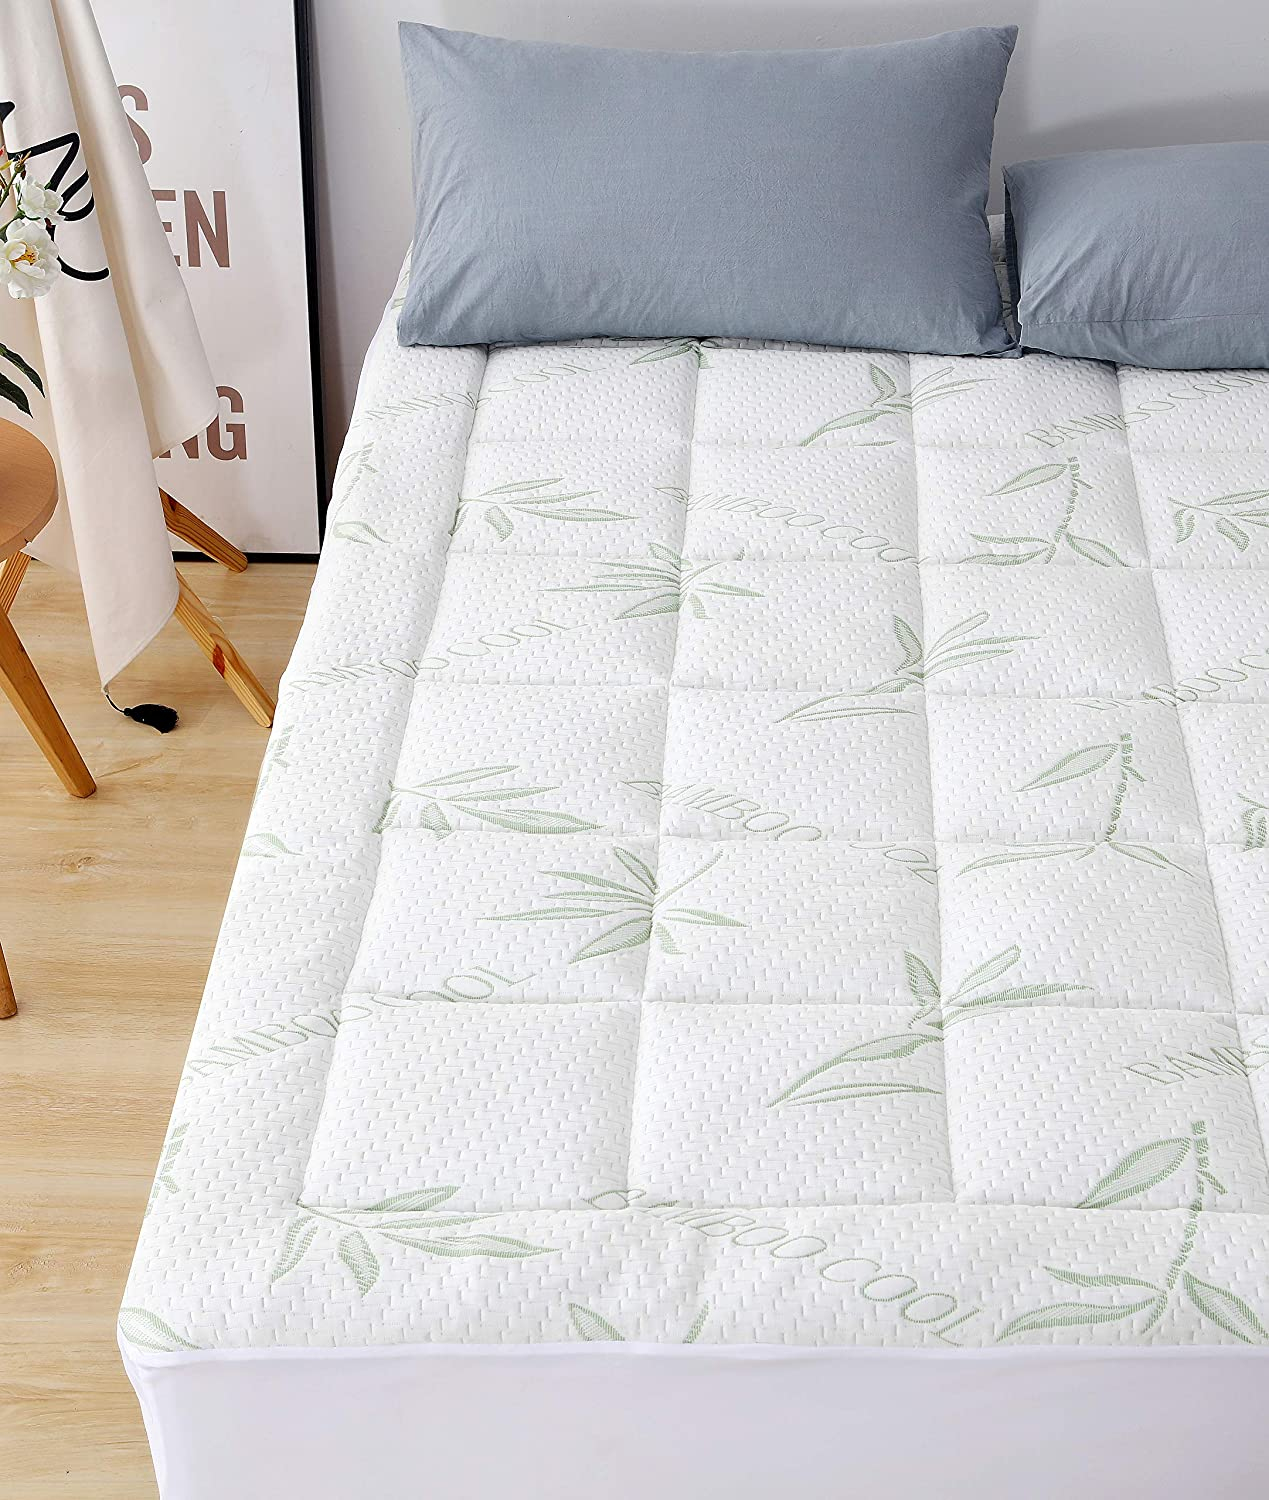 Elegant Comfort Premium Bamboo Mattress Pad-Overfilled Extra Plush Topper Hypoallergenic Breathable Cool Flow Technology, 16  Deep Pocket, Twin, Green